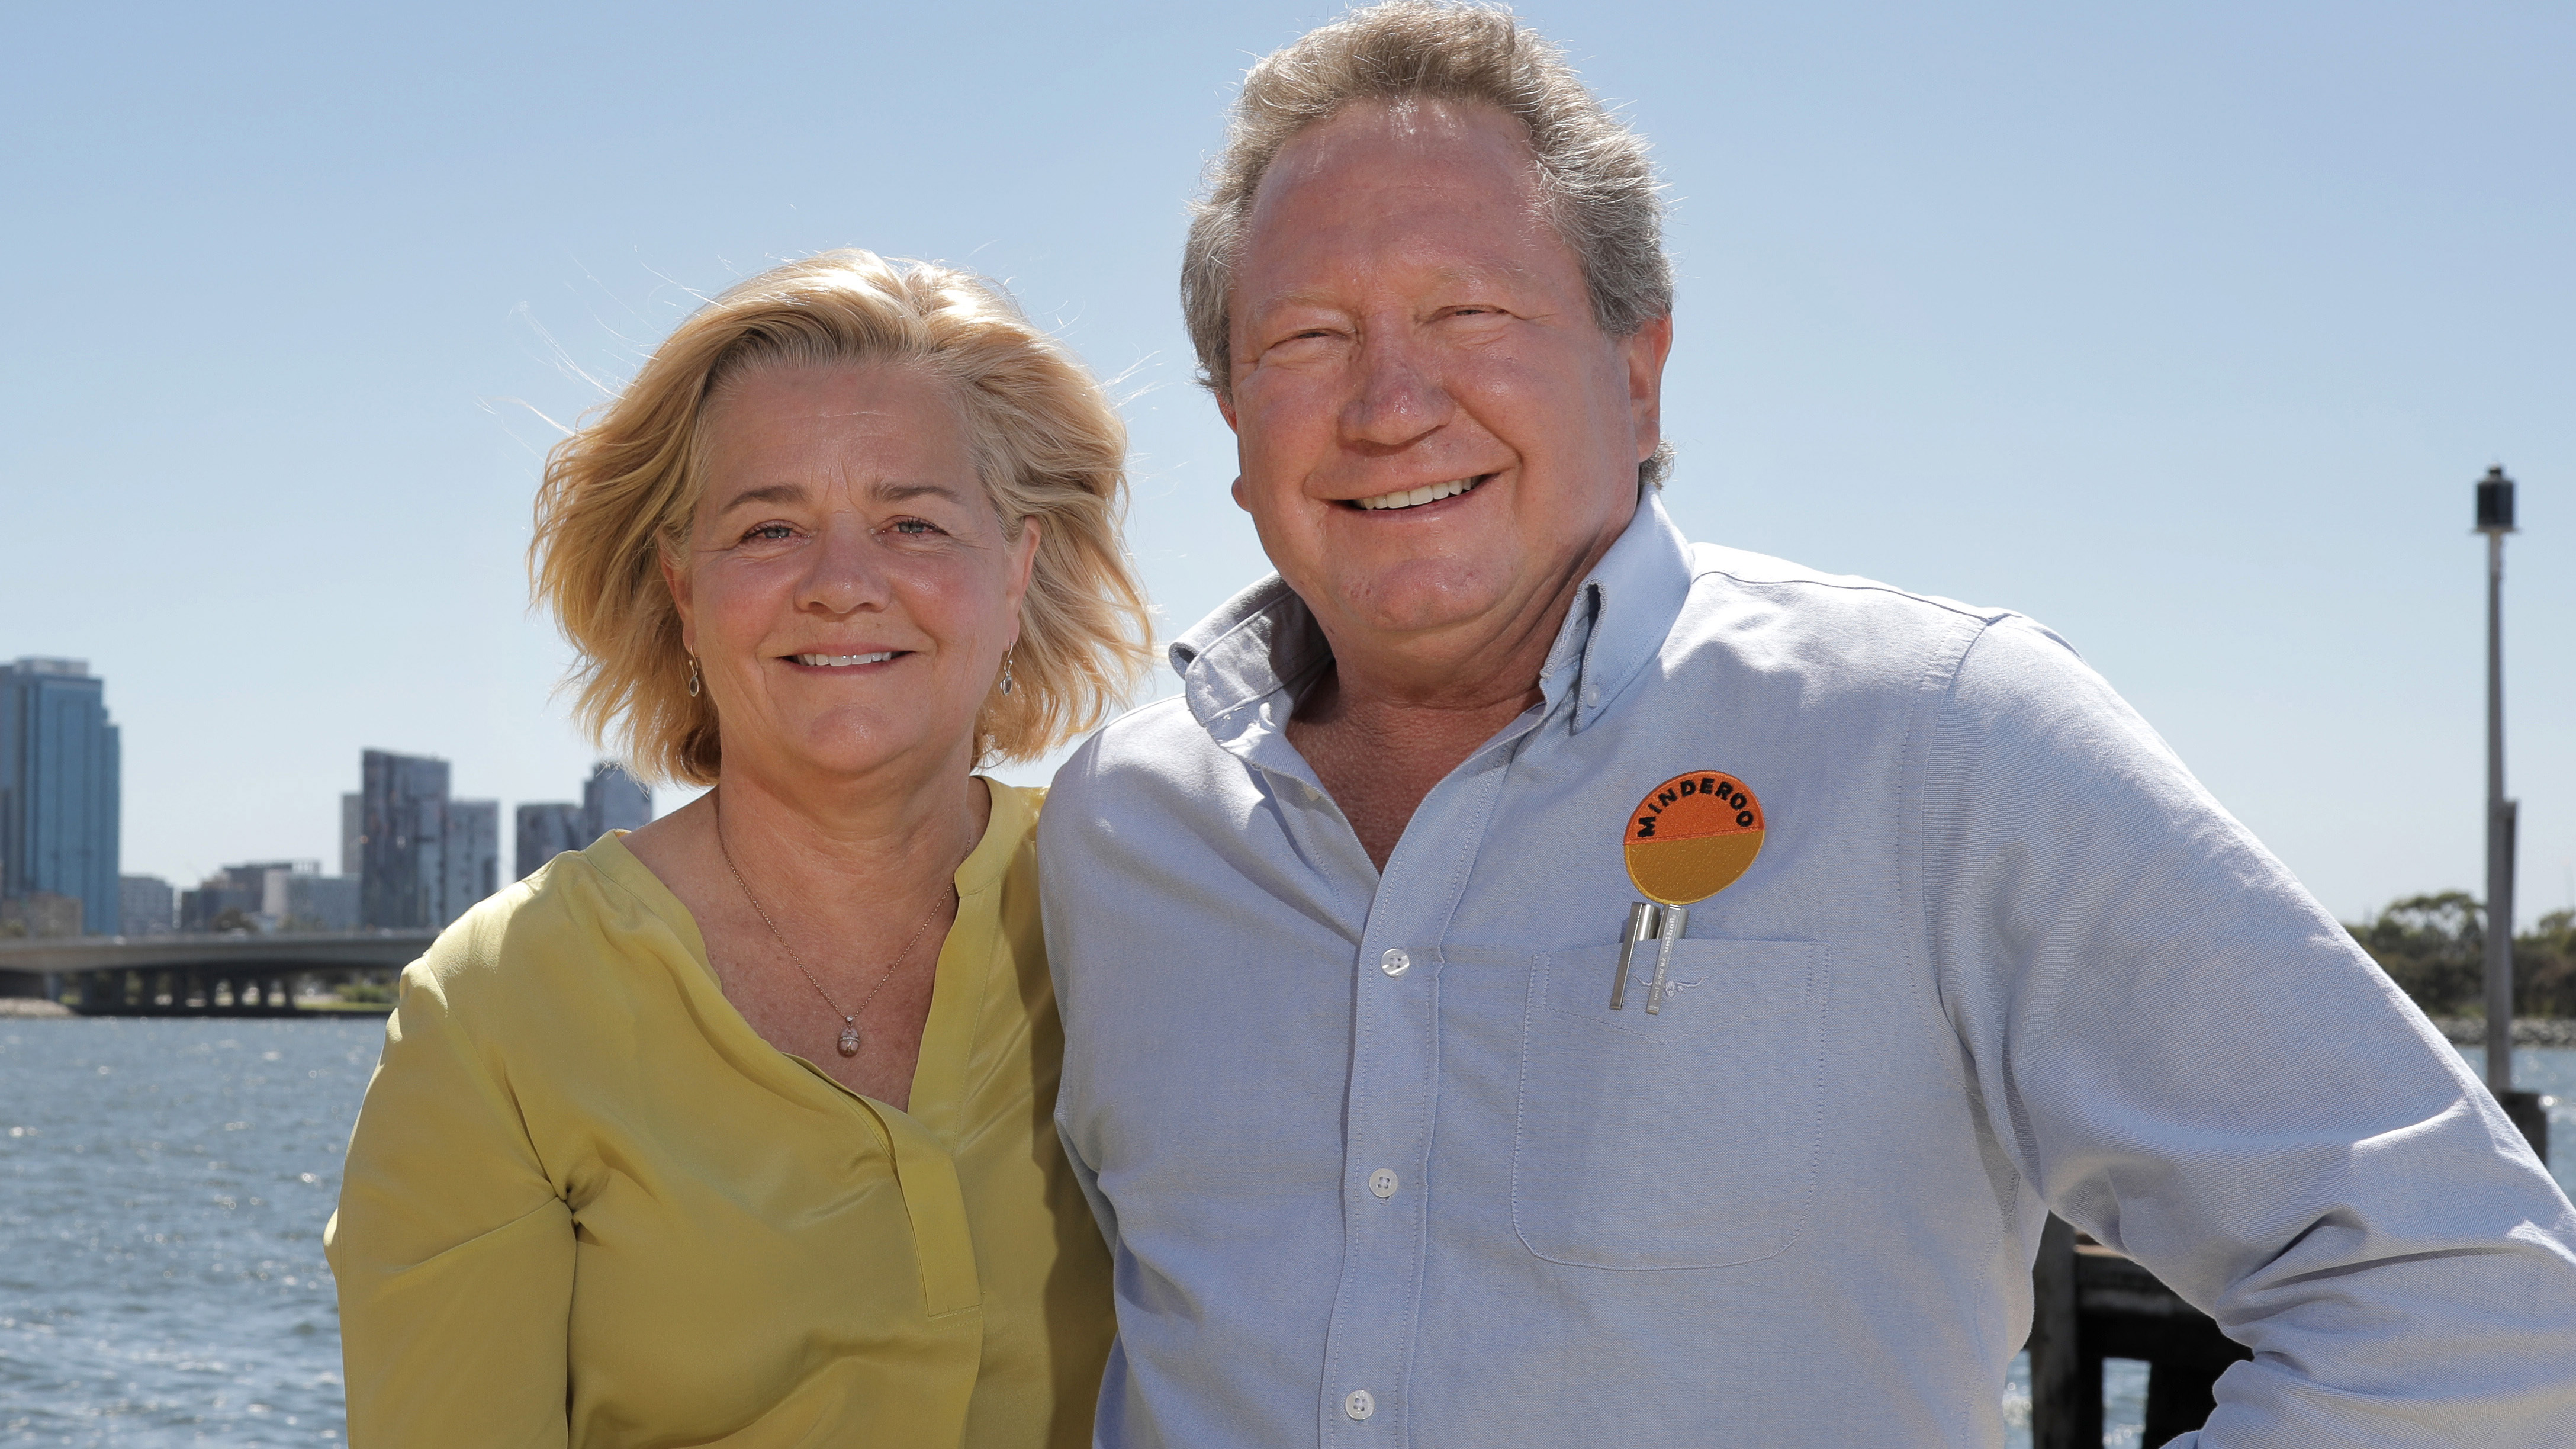 Andrew 'Twiggy' Forrest,, who has bought RM Williams, and his wife Nicola, in Perth in January.